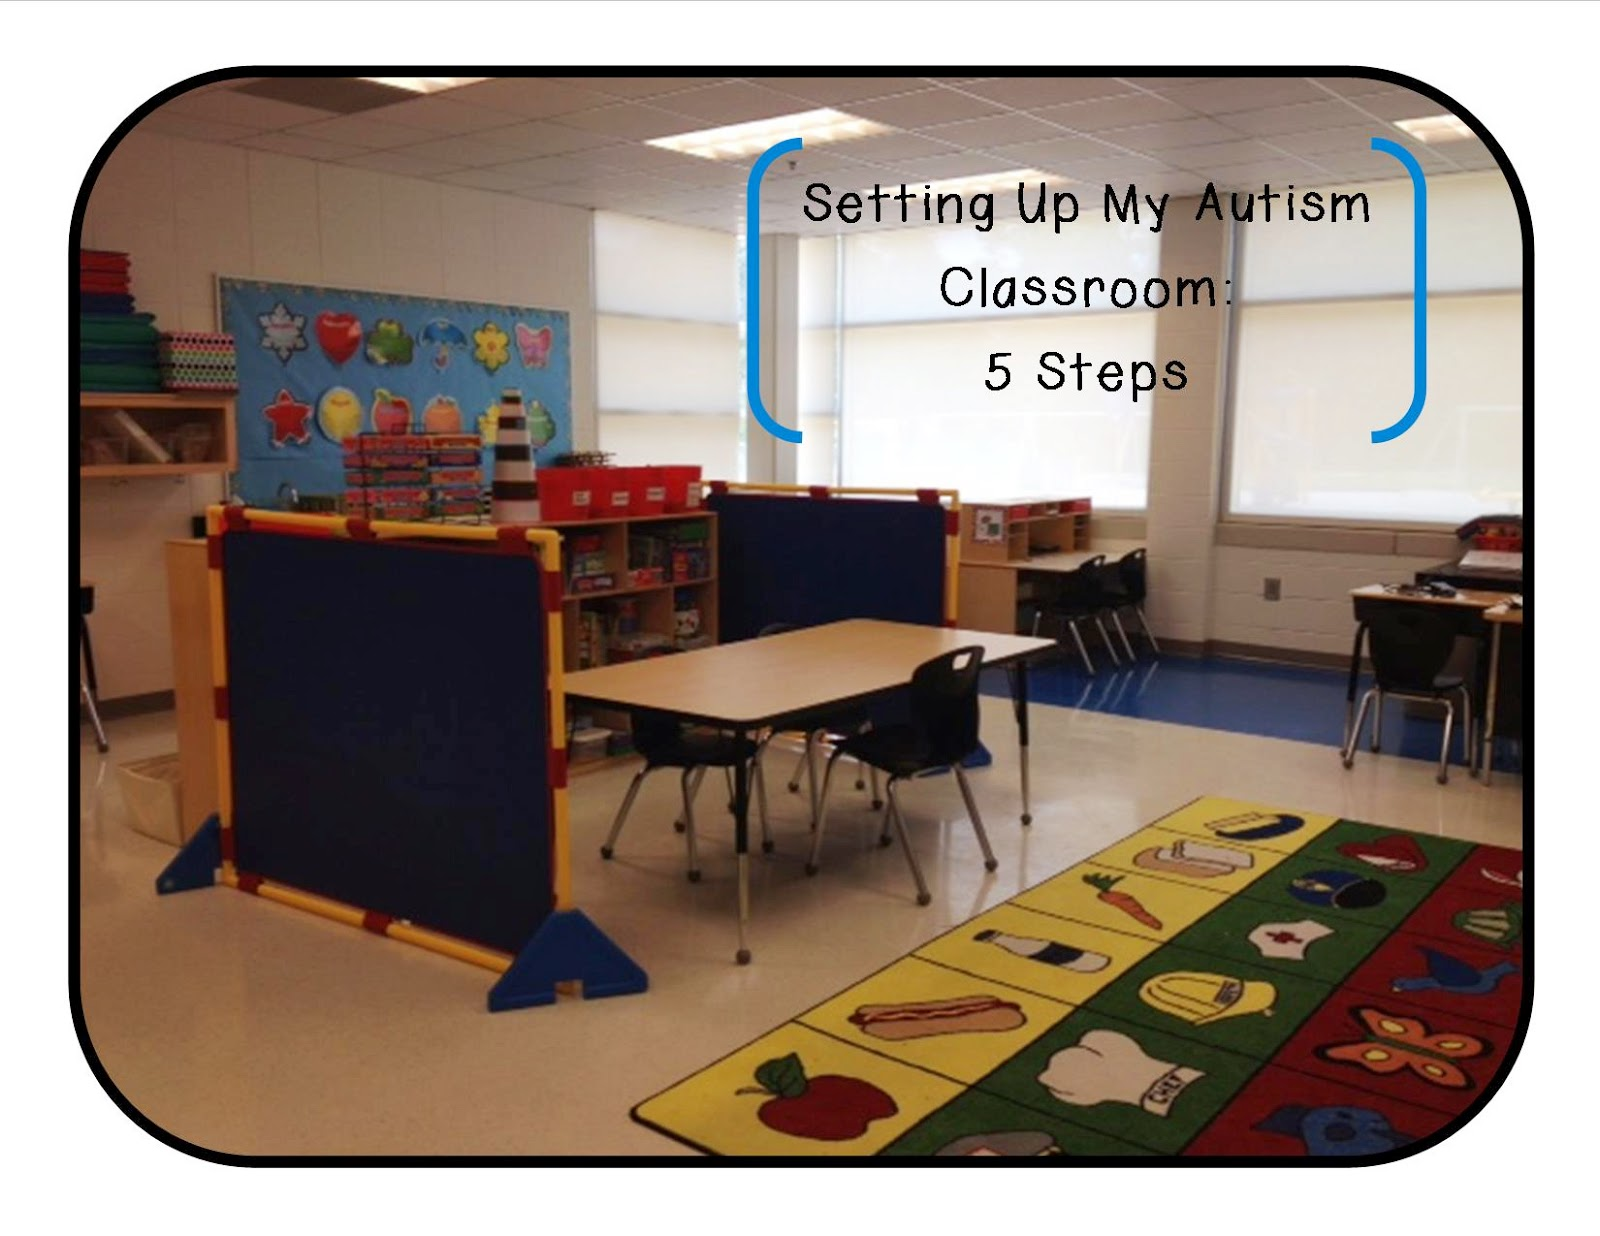 Classroom Design For Students With Autism ~ It s always sunny in sped setting up my autism class